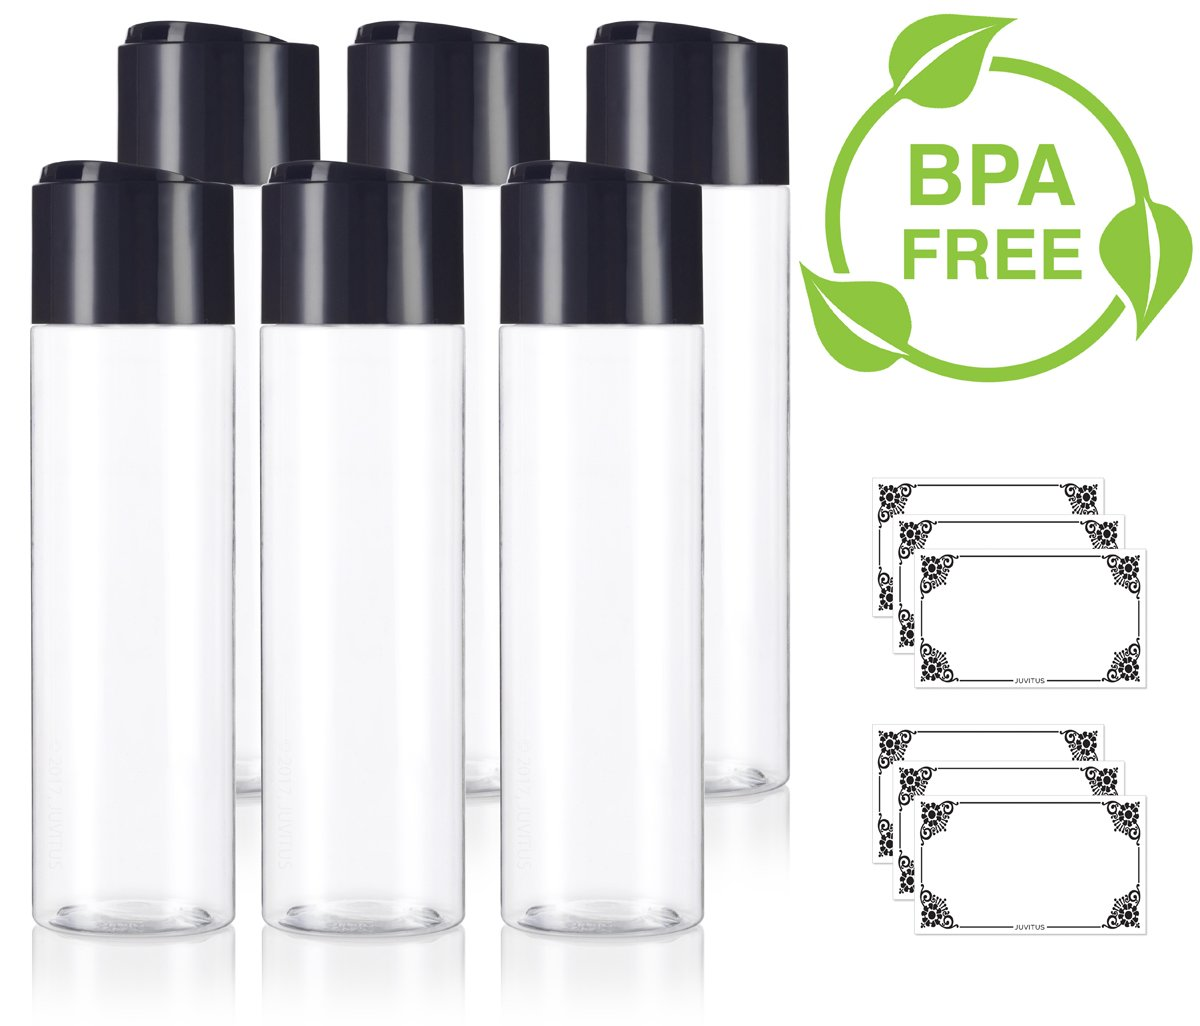 Clear 8 oz 250 ml Professional Cylinder PET Bottles BPA Free with Wide Black Disc Cap Lid 6 Pack Labels for Shampoo, Conditioner, Body Wash, Lotion, and More